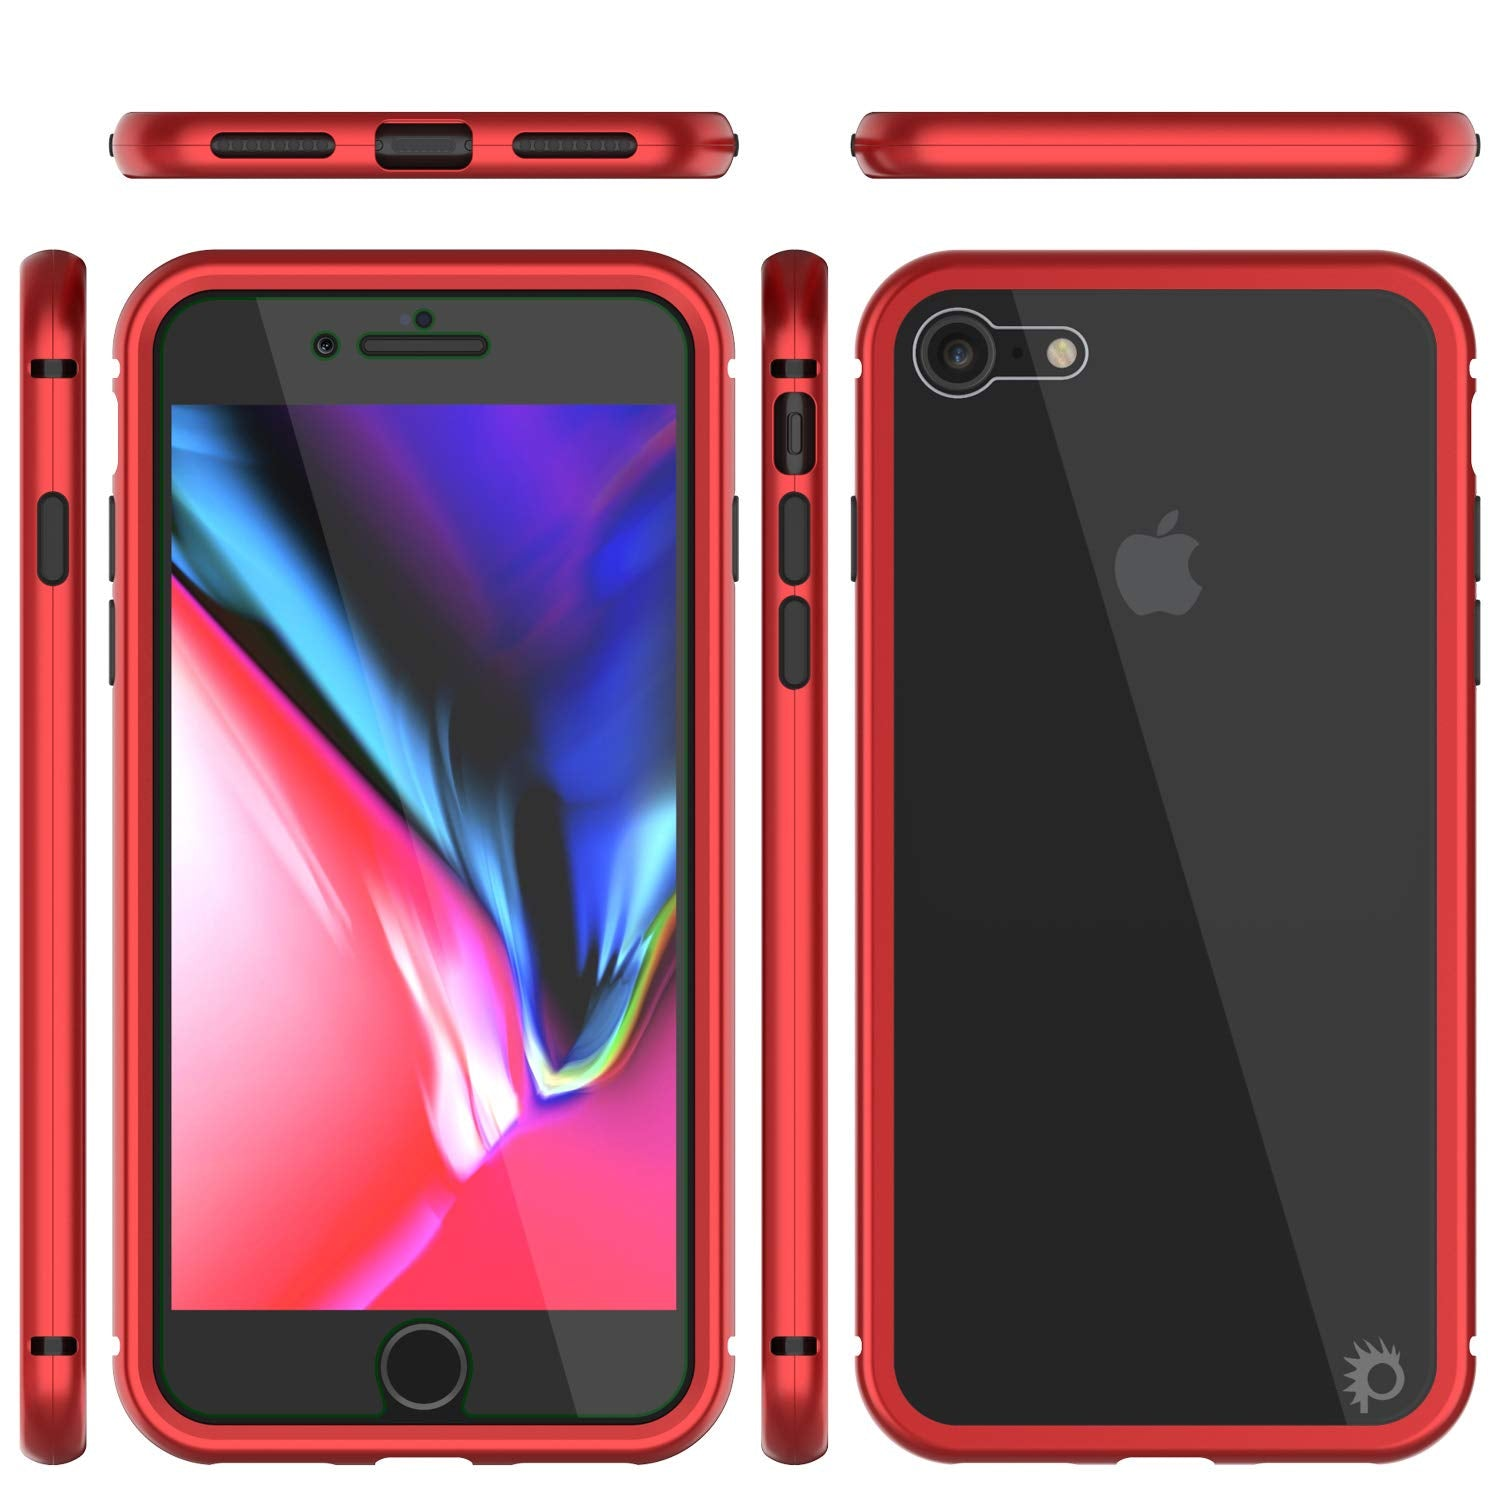 iPhone 7 Case, Punkcase Magnetix 2.0 Protective TPU Cover W/ Tempered Glass Screen Protector [Red]